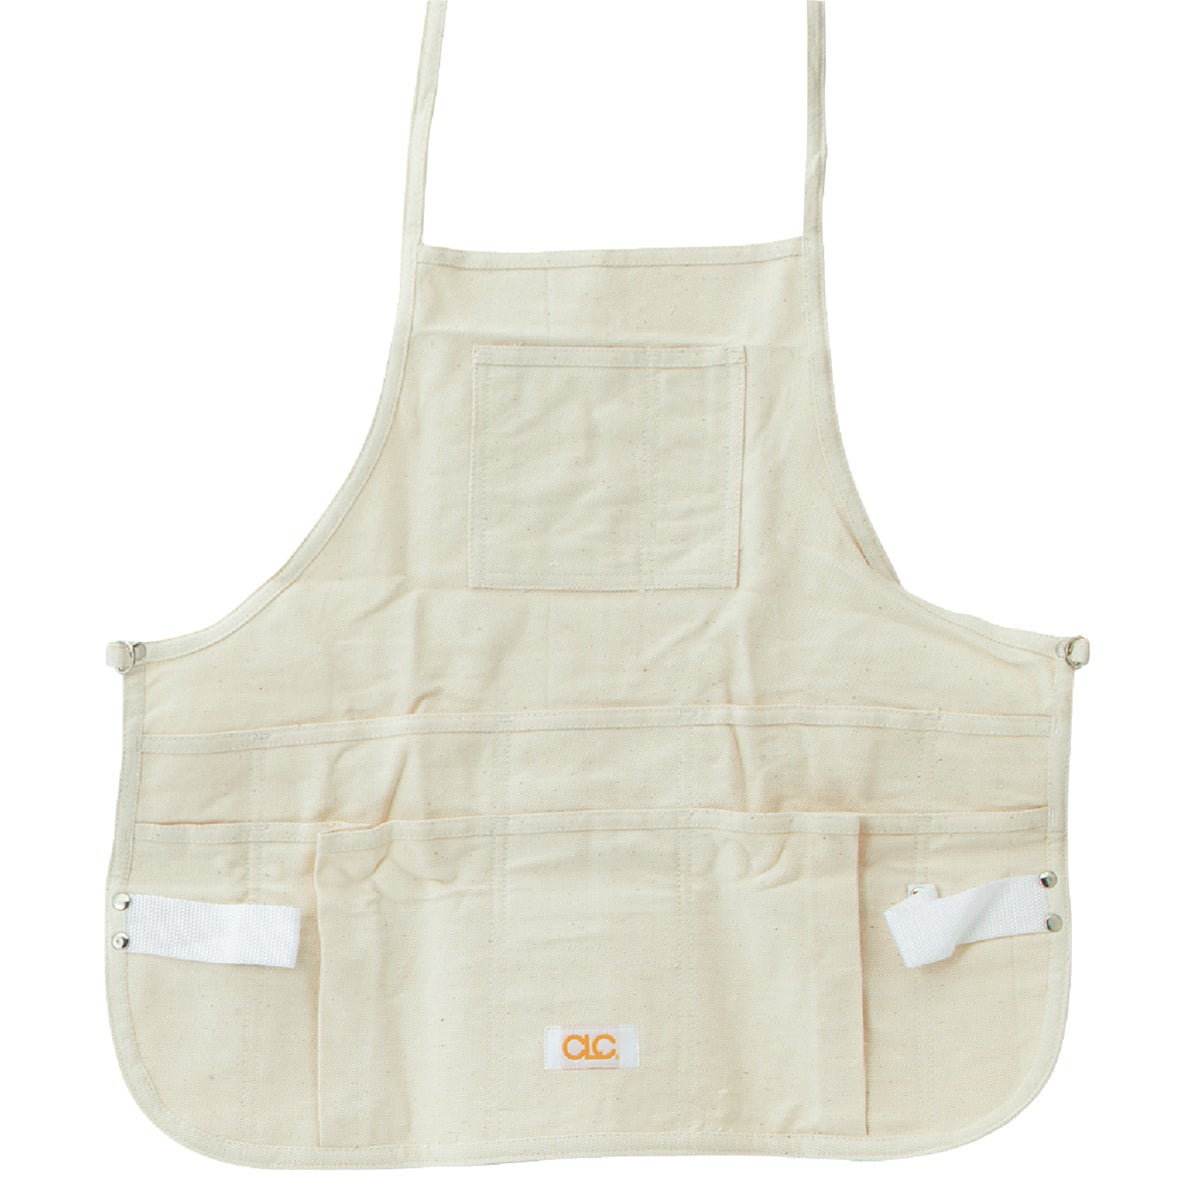 12-POCKET BIB APRON